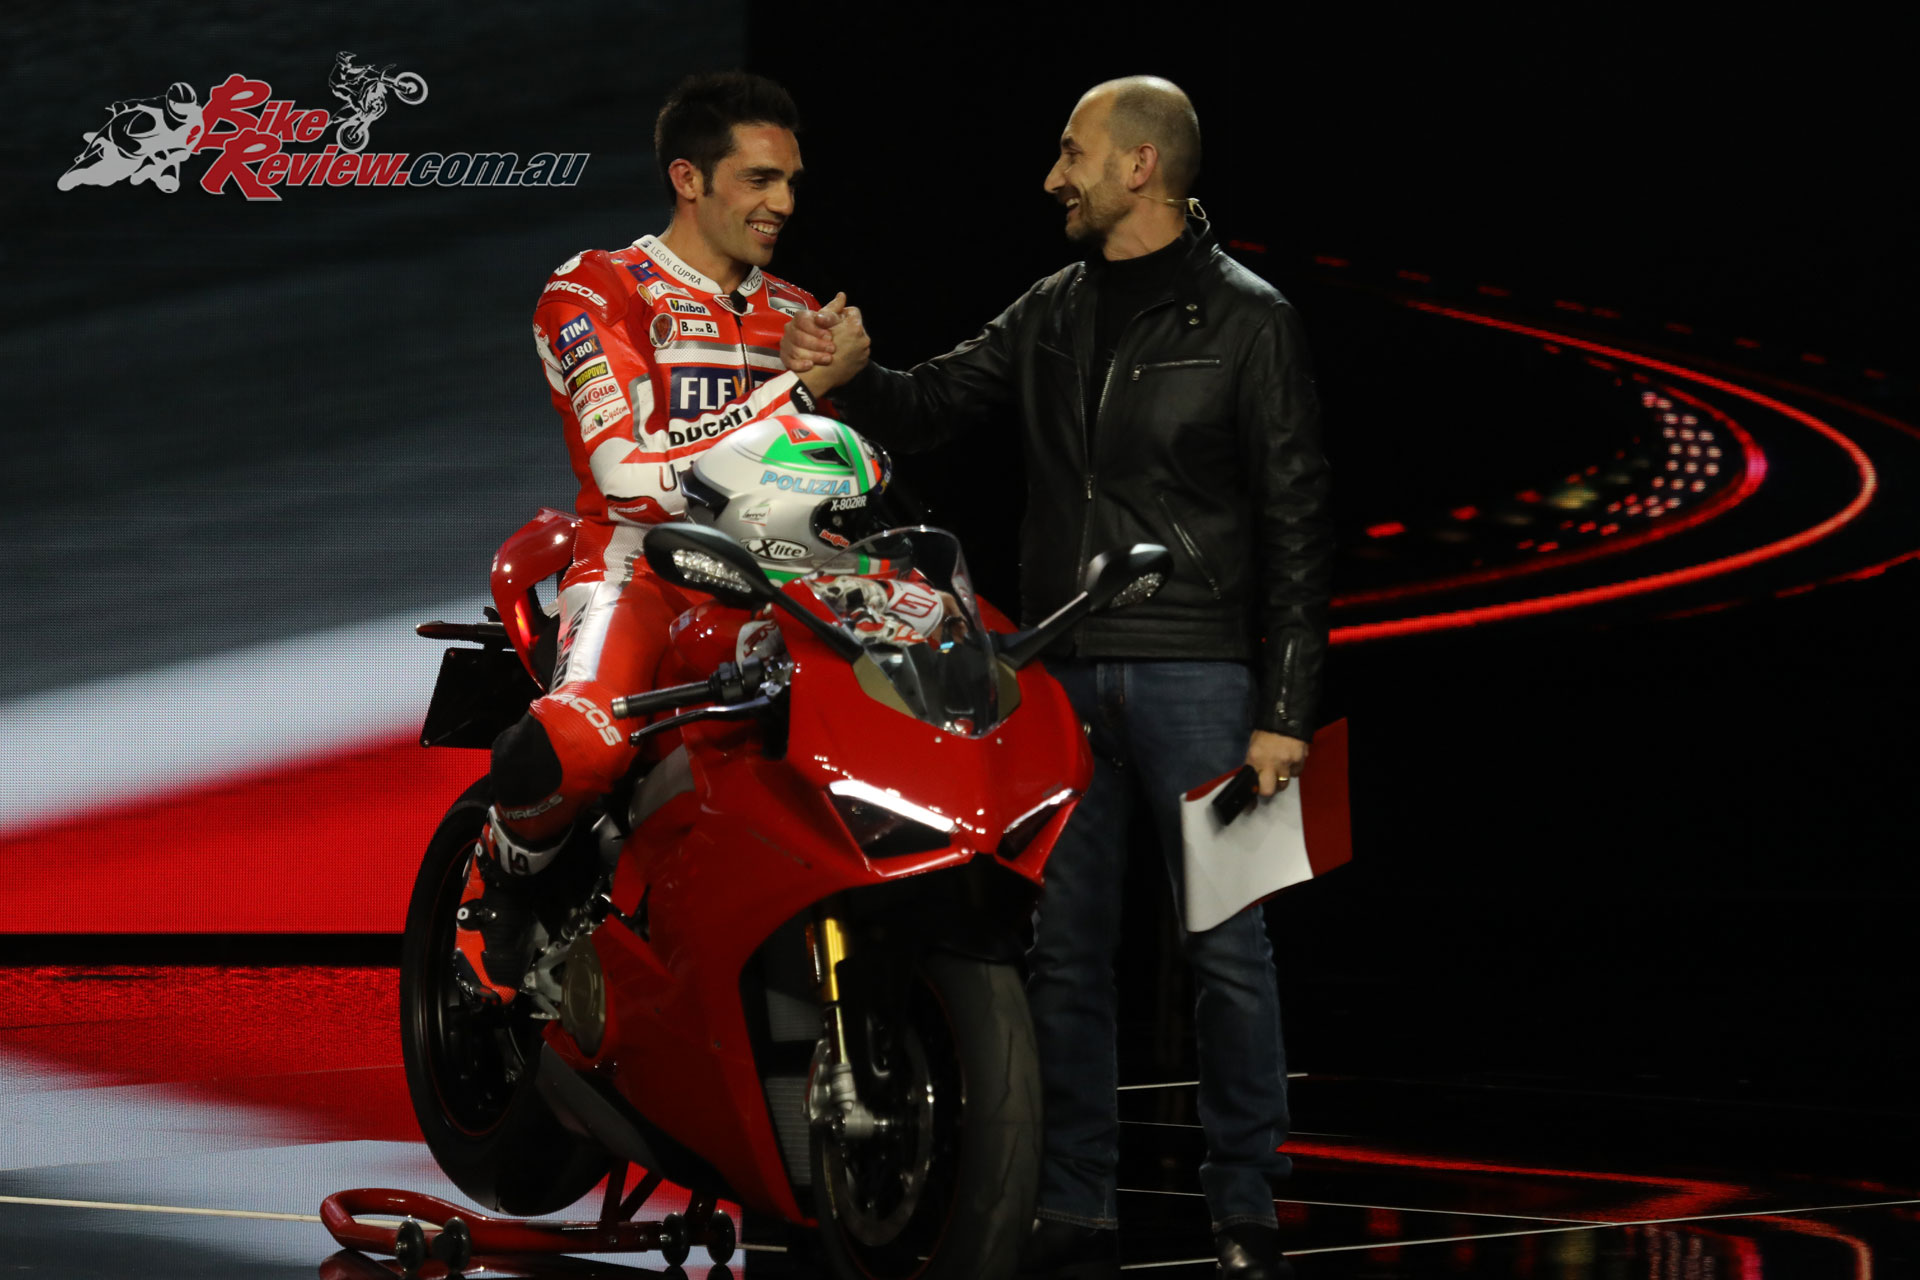 Michele Pirro presents the 2018 Panigale V4